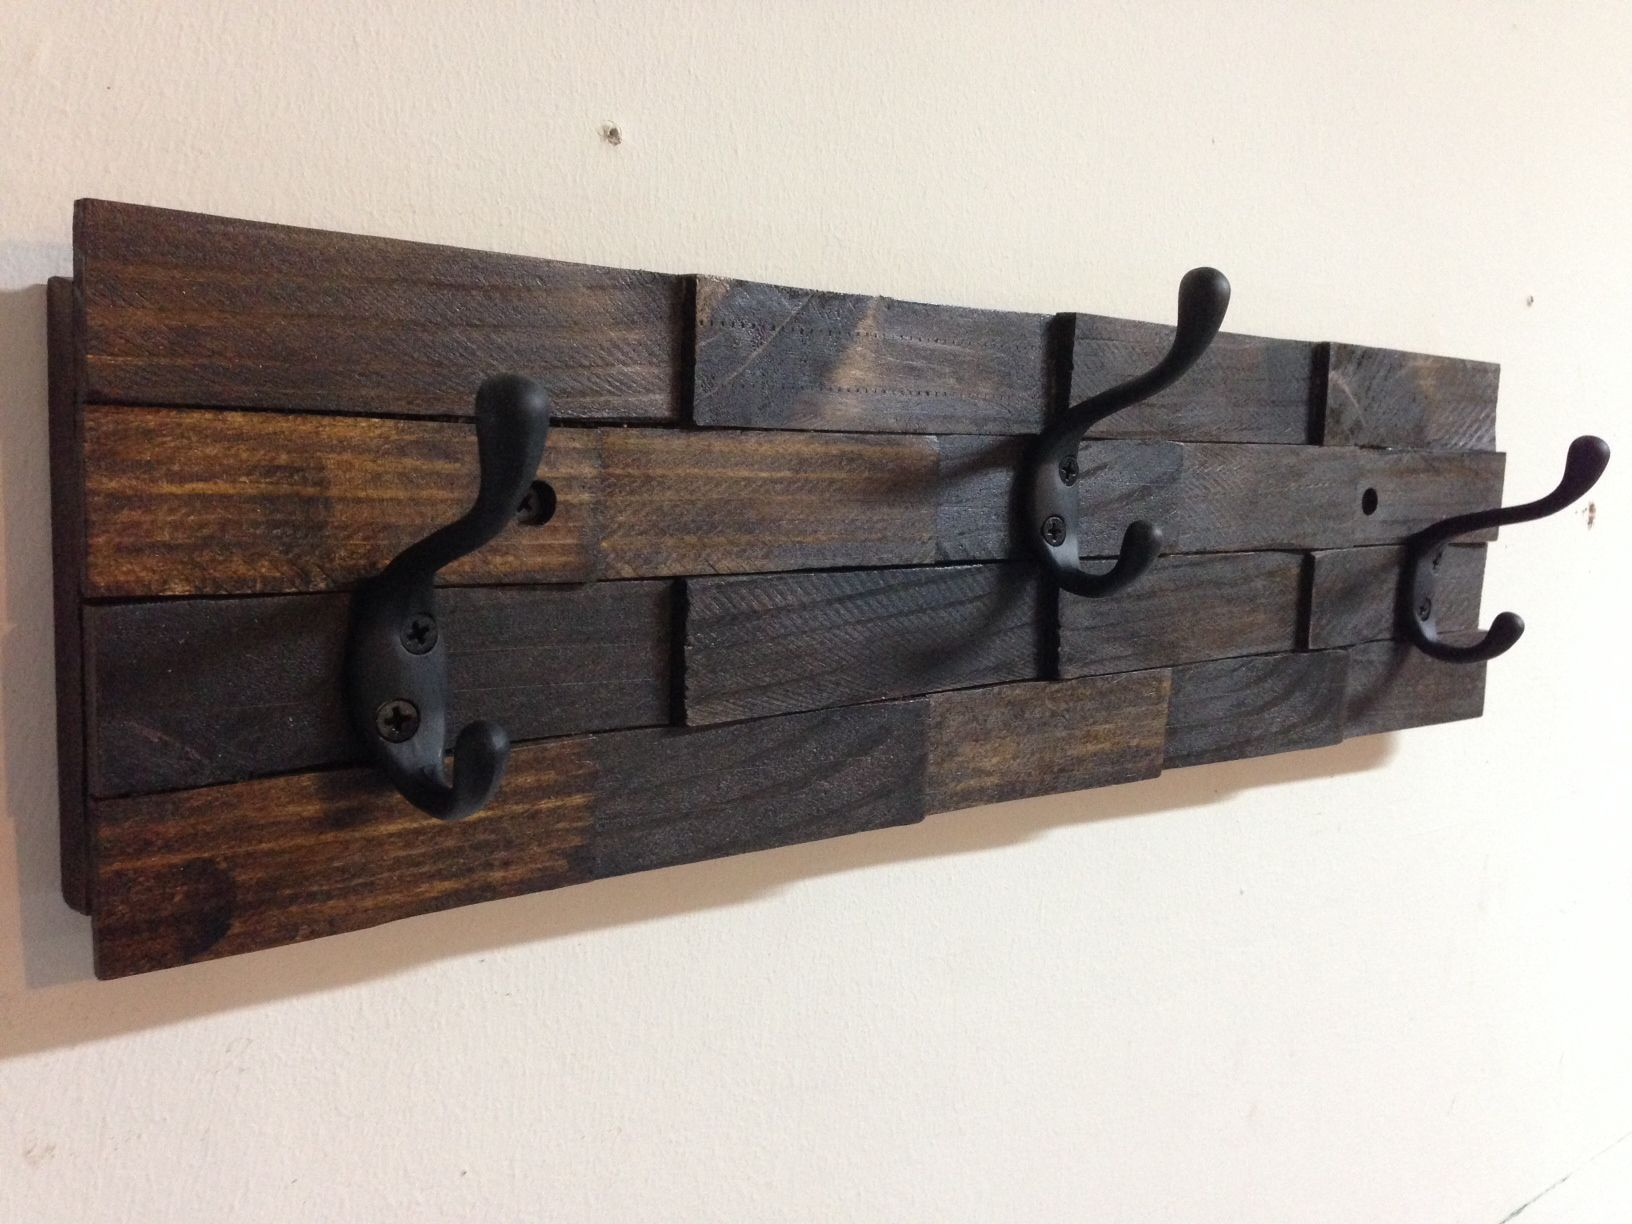 Rustic Wall Mount Wood Shim Coat Hook Rack 3 Oil Rubbed